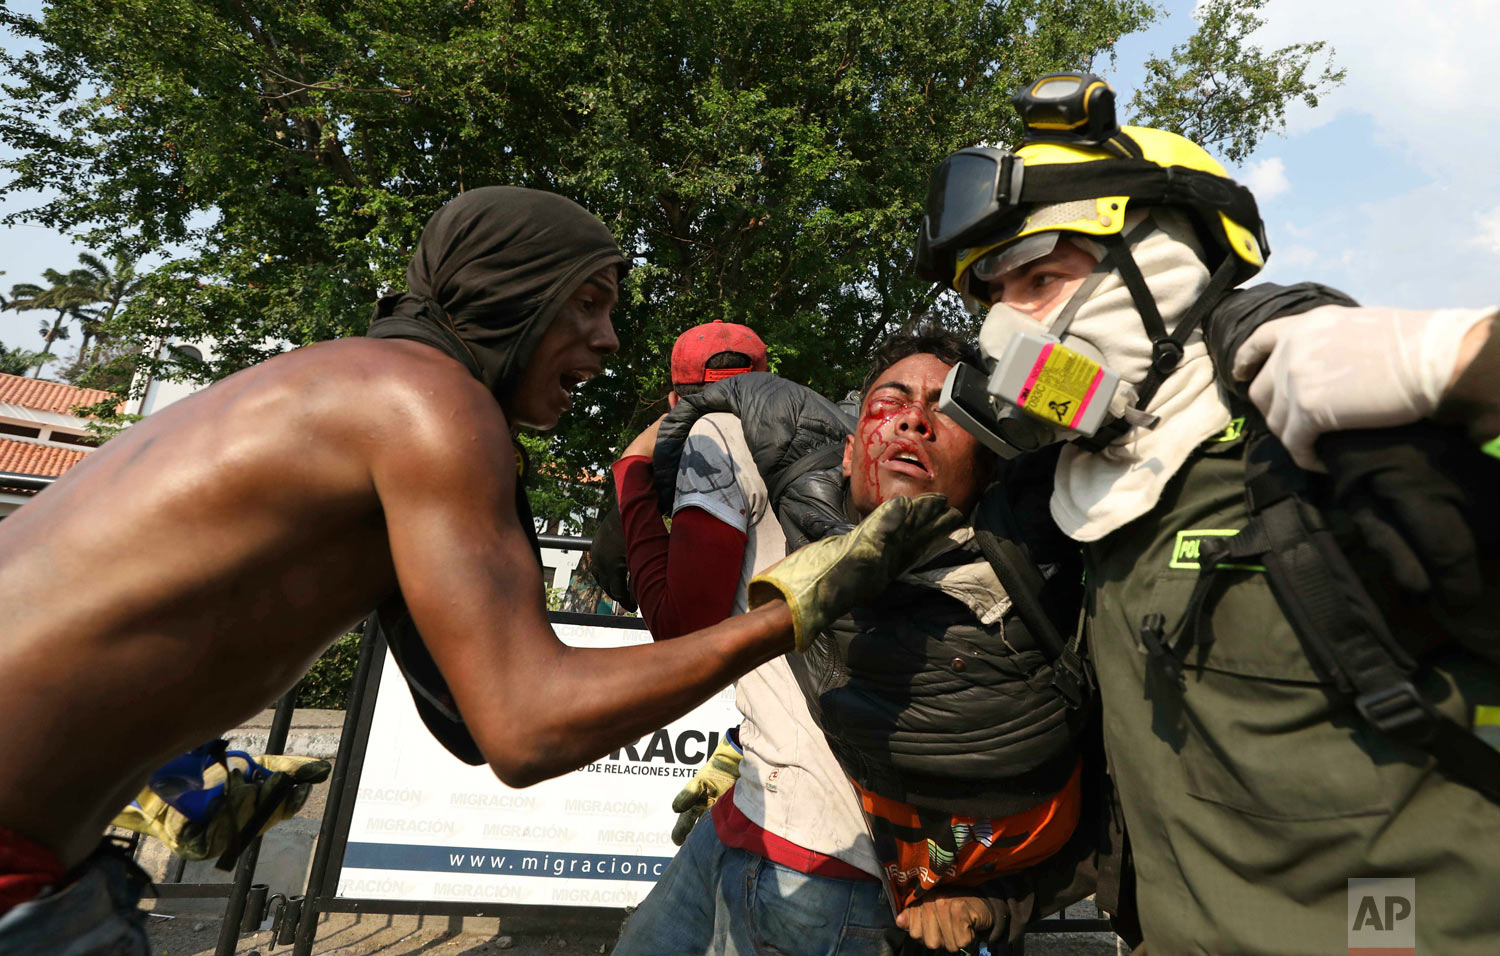 A Venezuelan youth, injured in clashes with Venezuelan National Guardsmen, is carried to a safe zone, at the Simon Bolivar International Bridge in La Parada, Colombia, Feb. 25, 2019. (AP Photo/Fernando Vergara)